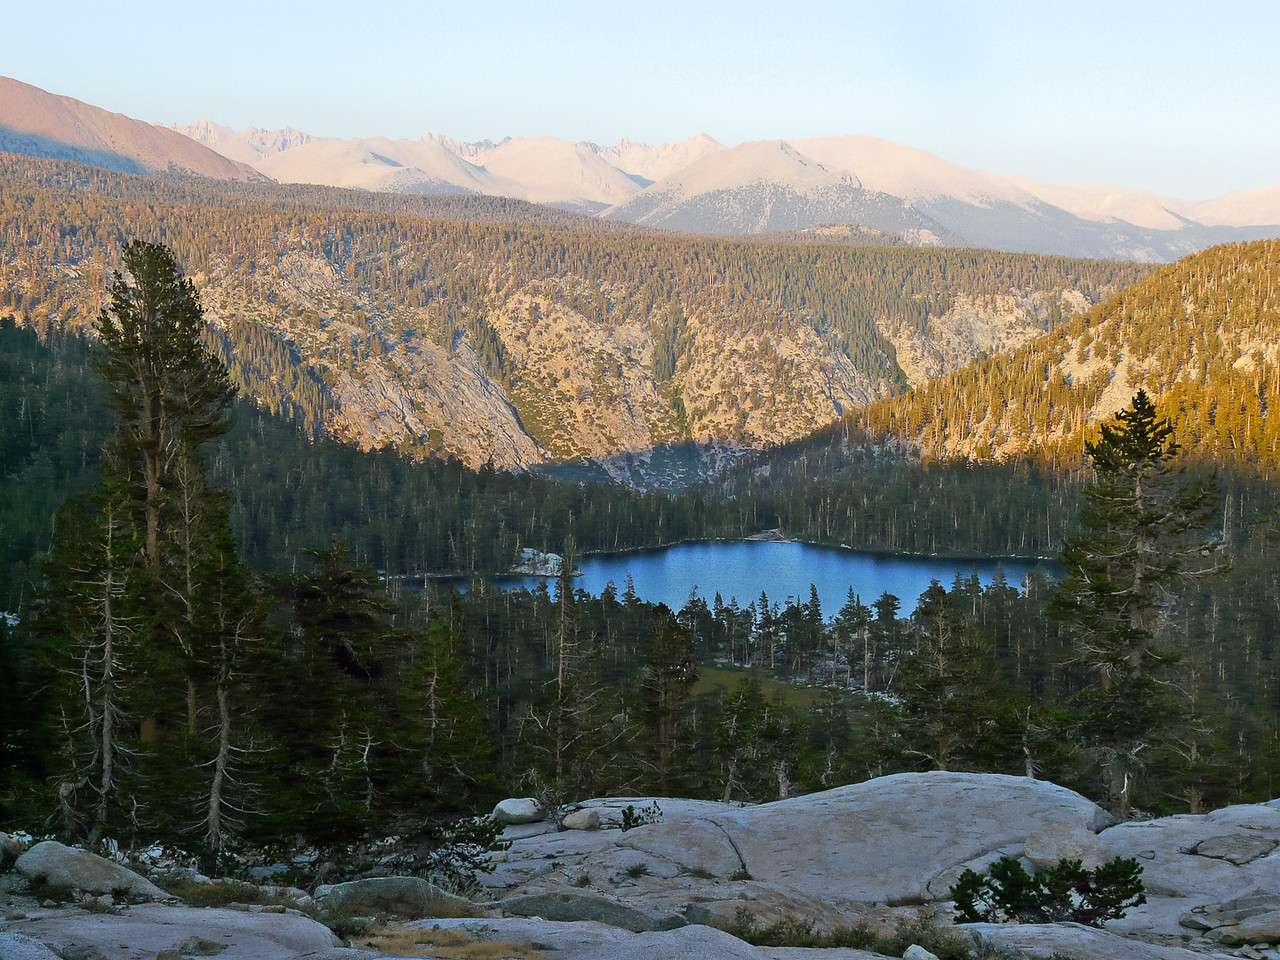 Just beyond camp was this view down to the lowest Big Five Lake: Lake 9830.